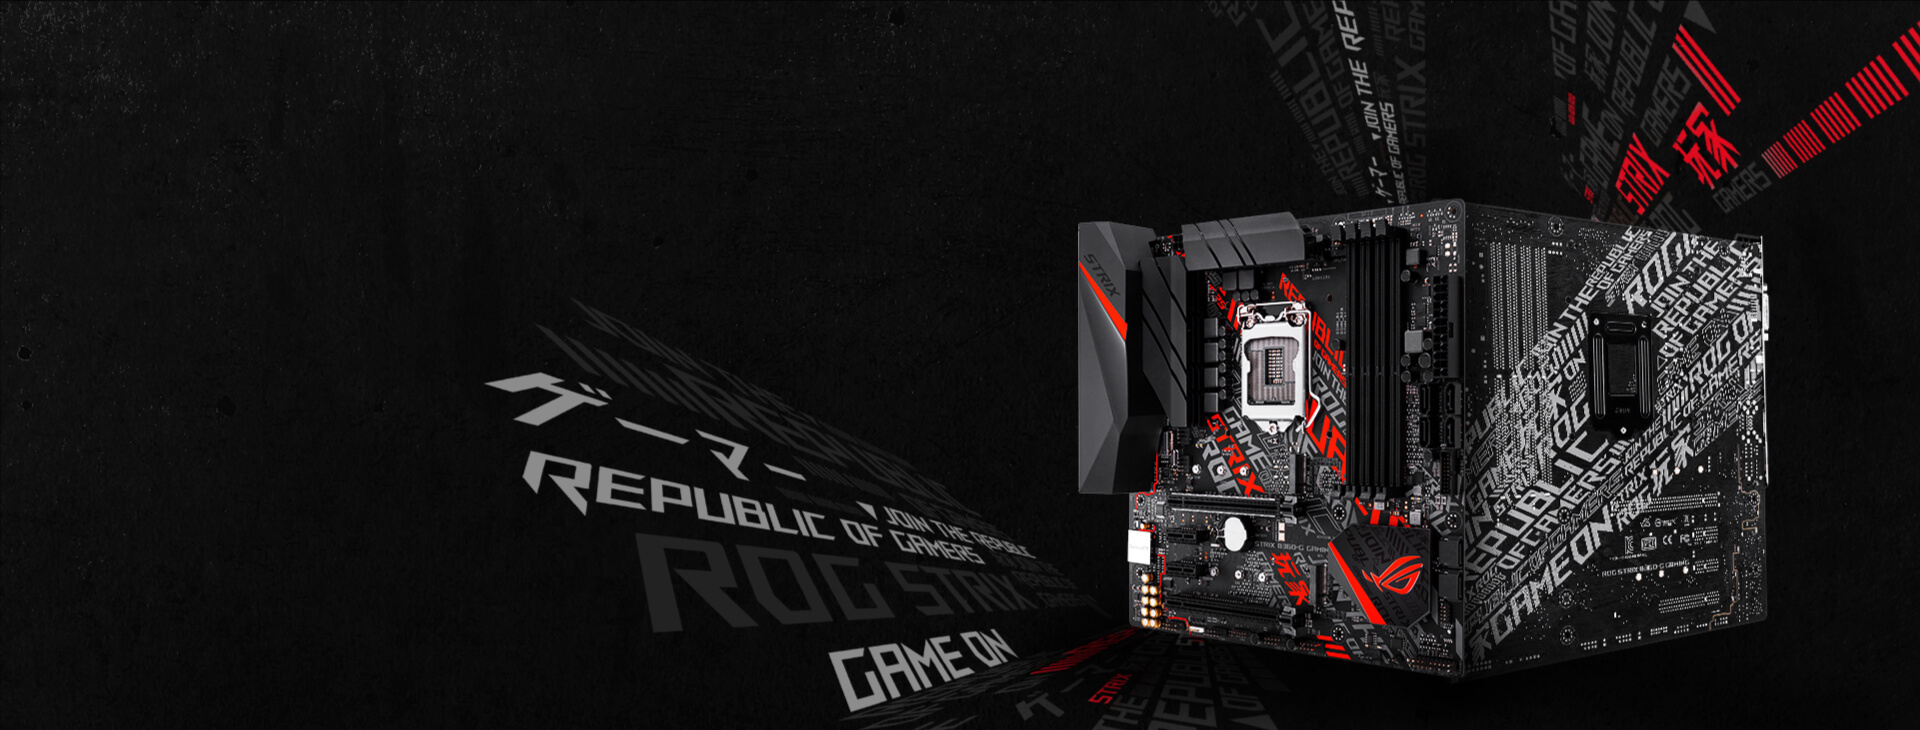 Rog Strix B360 G Gaming Motherboards Asus Usa Correspondence Of The Pins On Hdmi To Dvid Cable Up Your Aesthetic Horizons With A New Cyber Text Design 3d Printable Parts From Fan Grills Combs And Aura Illumination Create Personalized